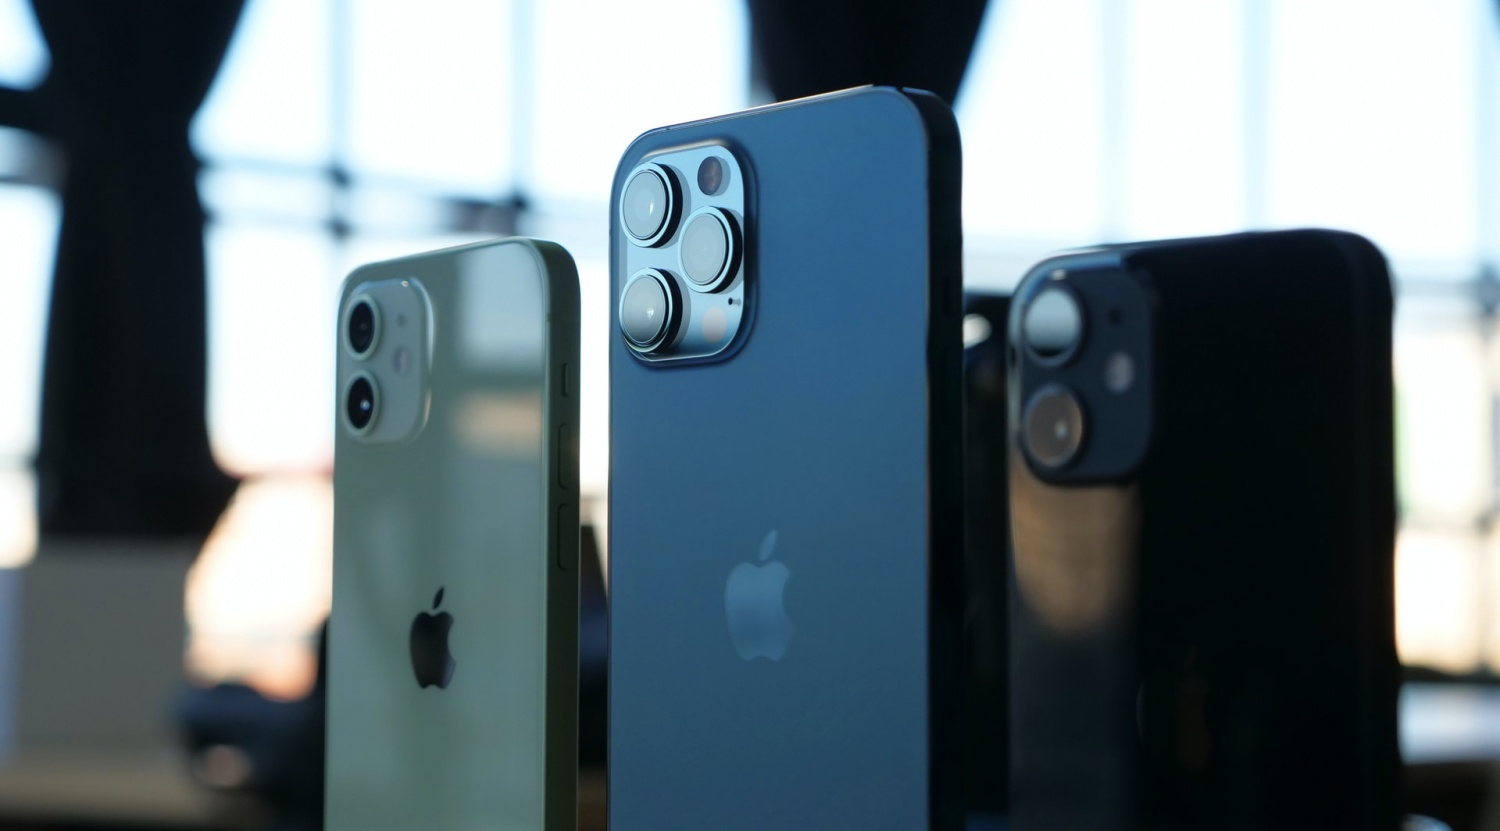 iPhone 13 vs. iPhone 12: Design Differences, Camera Upgrades, Battery and More Specs